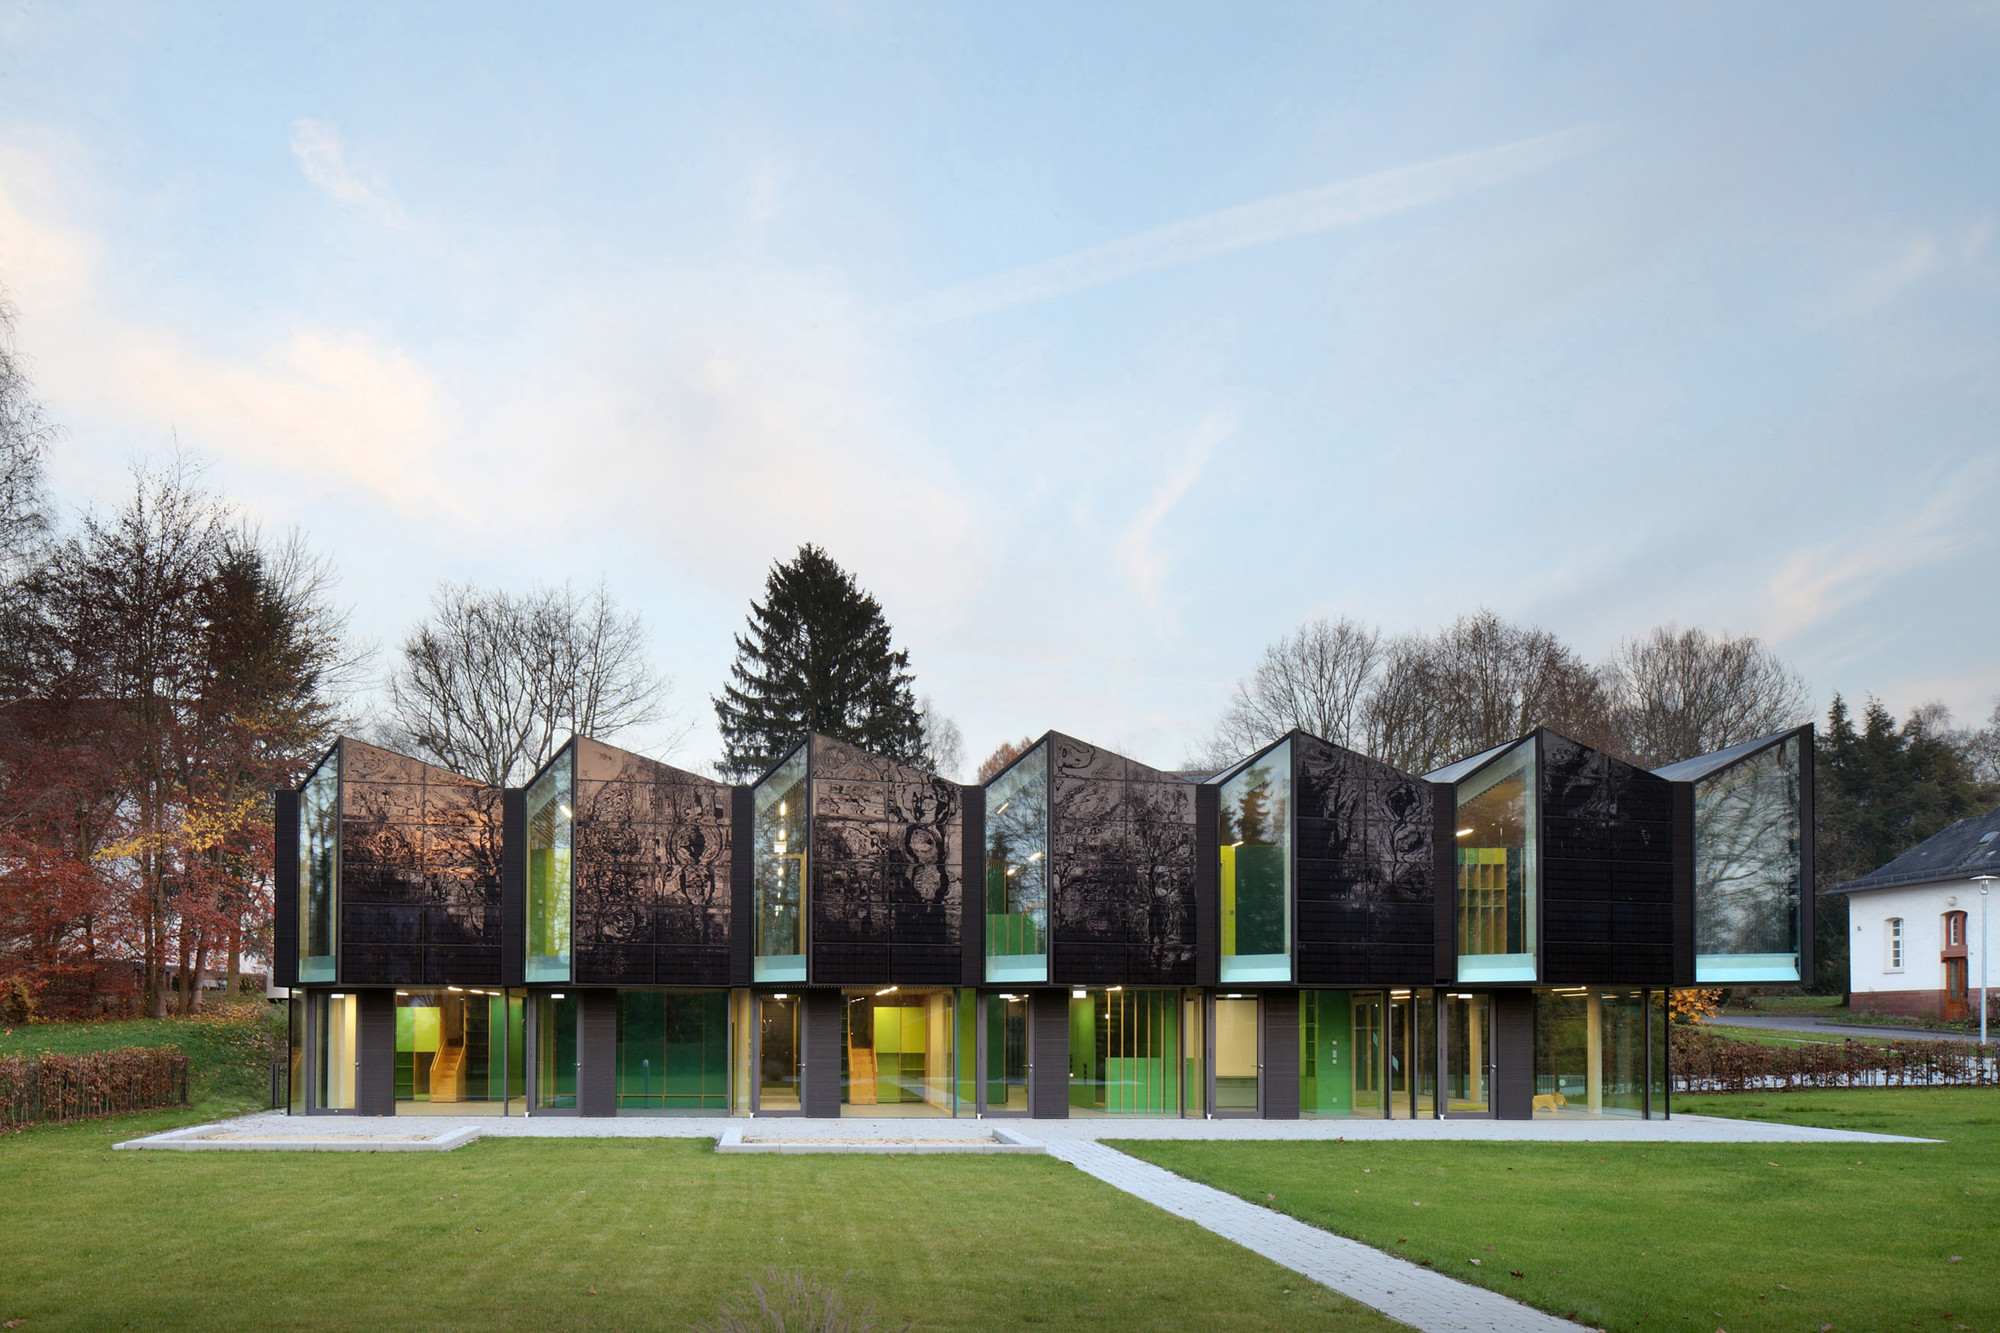 Architekt Marburg nursery +e in marburg / opus architekten | archdaily